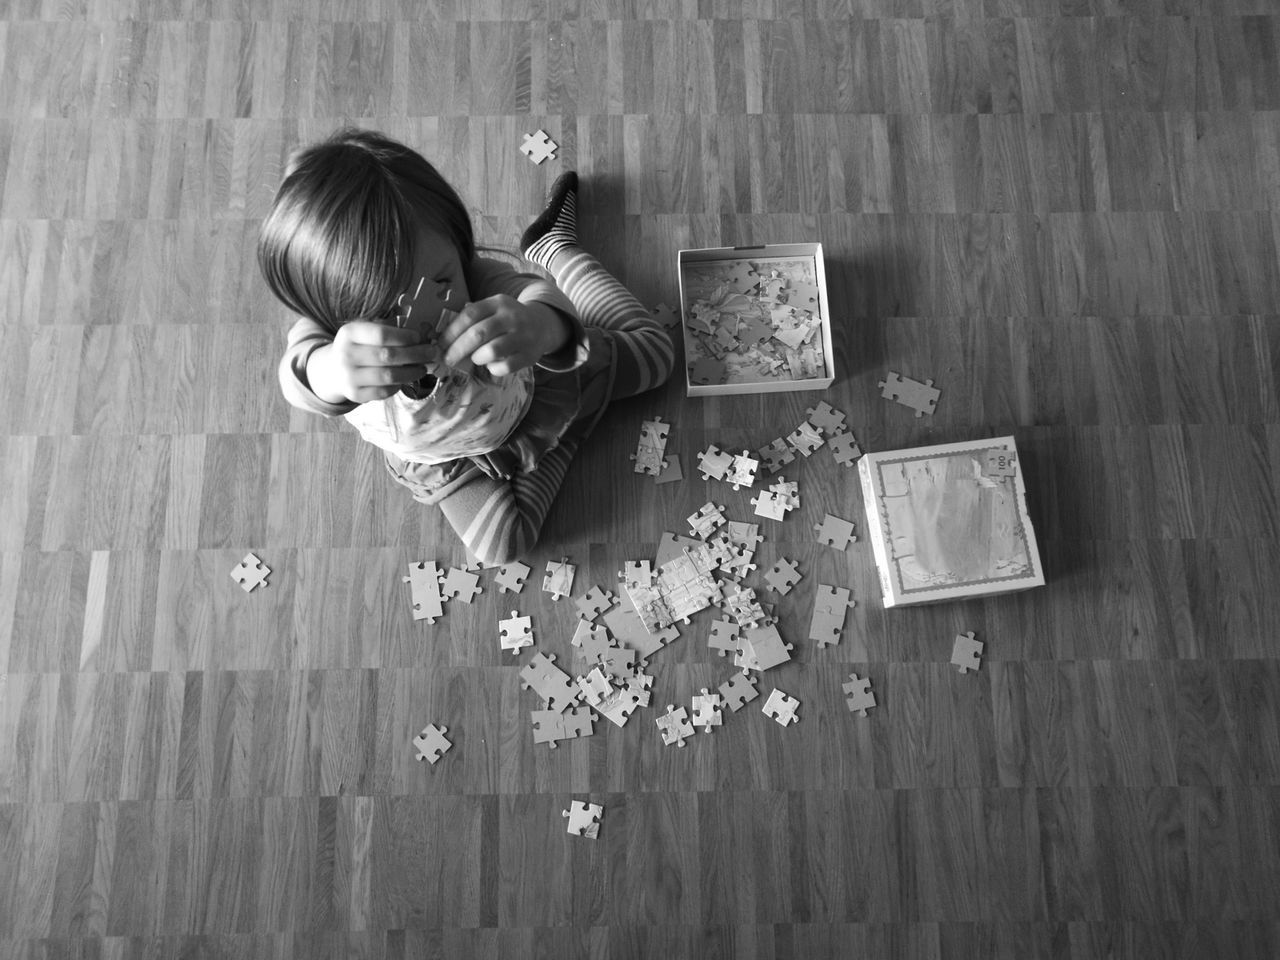 Monochrome Photography Childhood Innocence Puzzle  Lifestyles Domestic Life High Angle View Kind Spielen Casallo Juego Rompecabezas